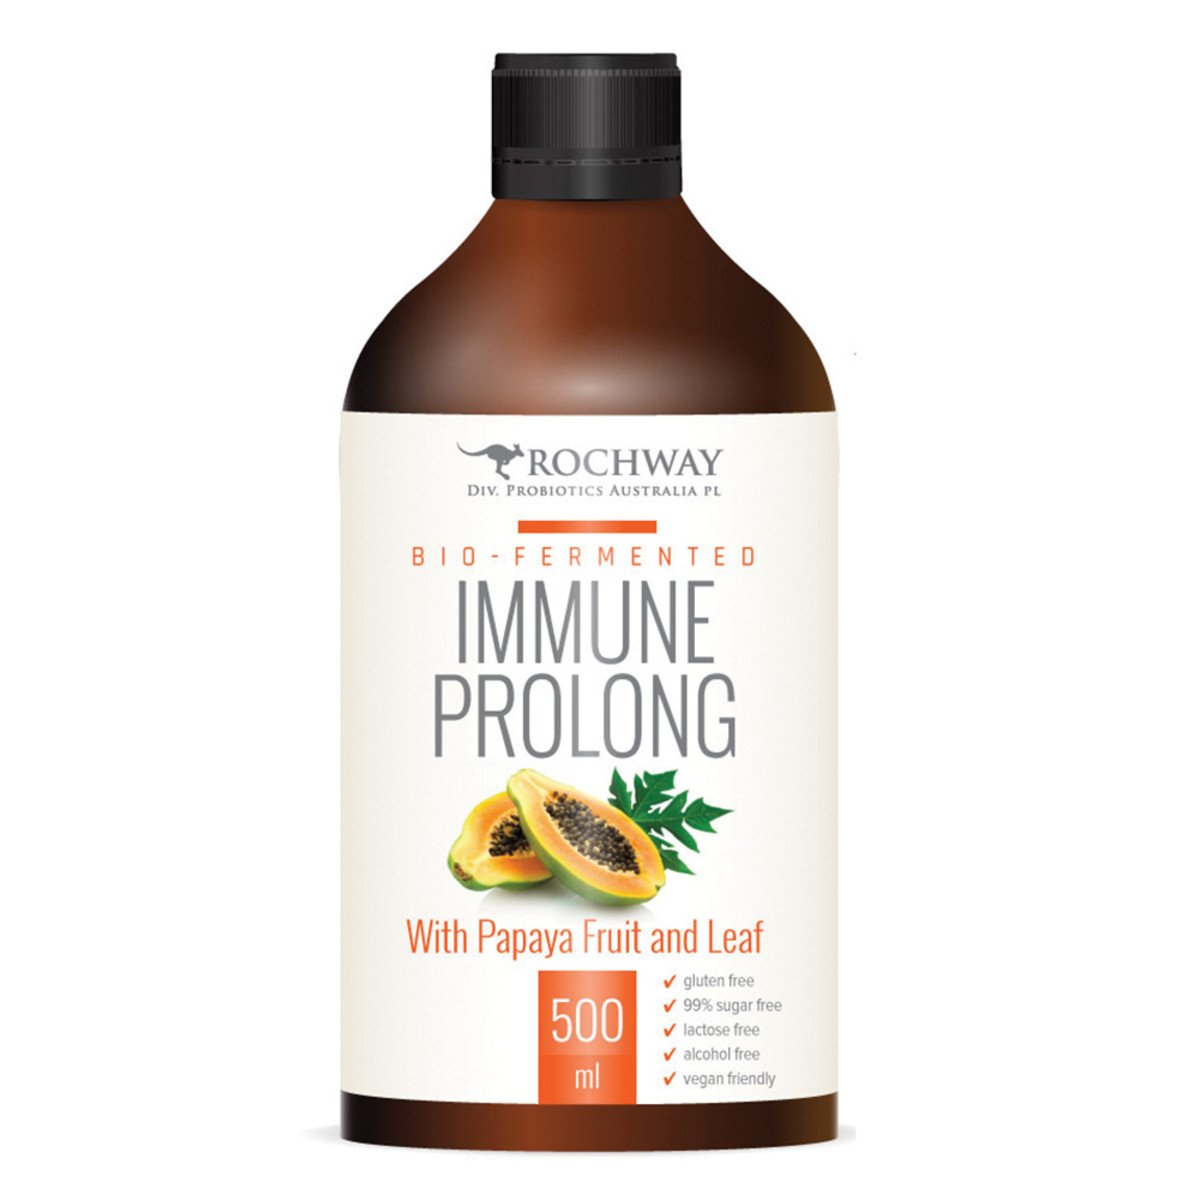 ROCHWAY Bio-Fermented Immune Prolong with Papaya Fruit and Leaf 500ml